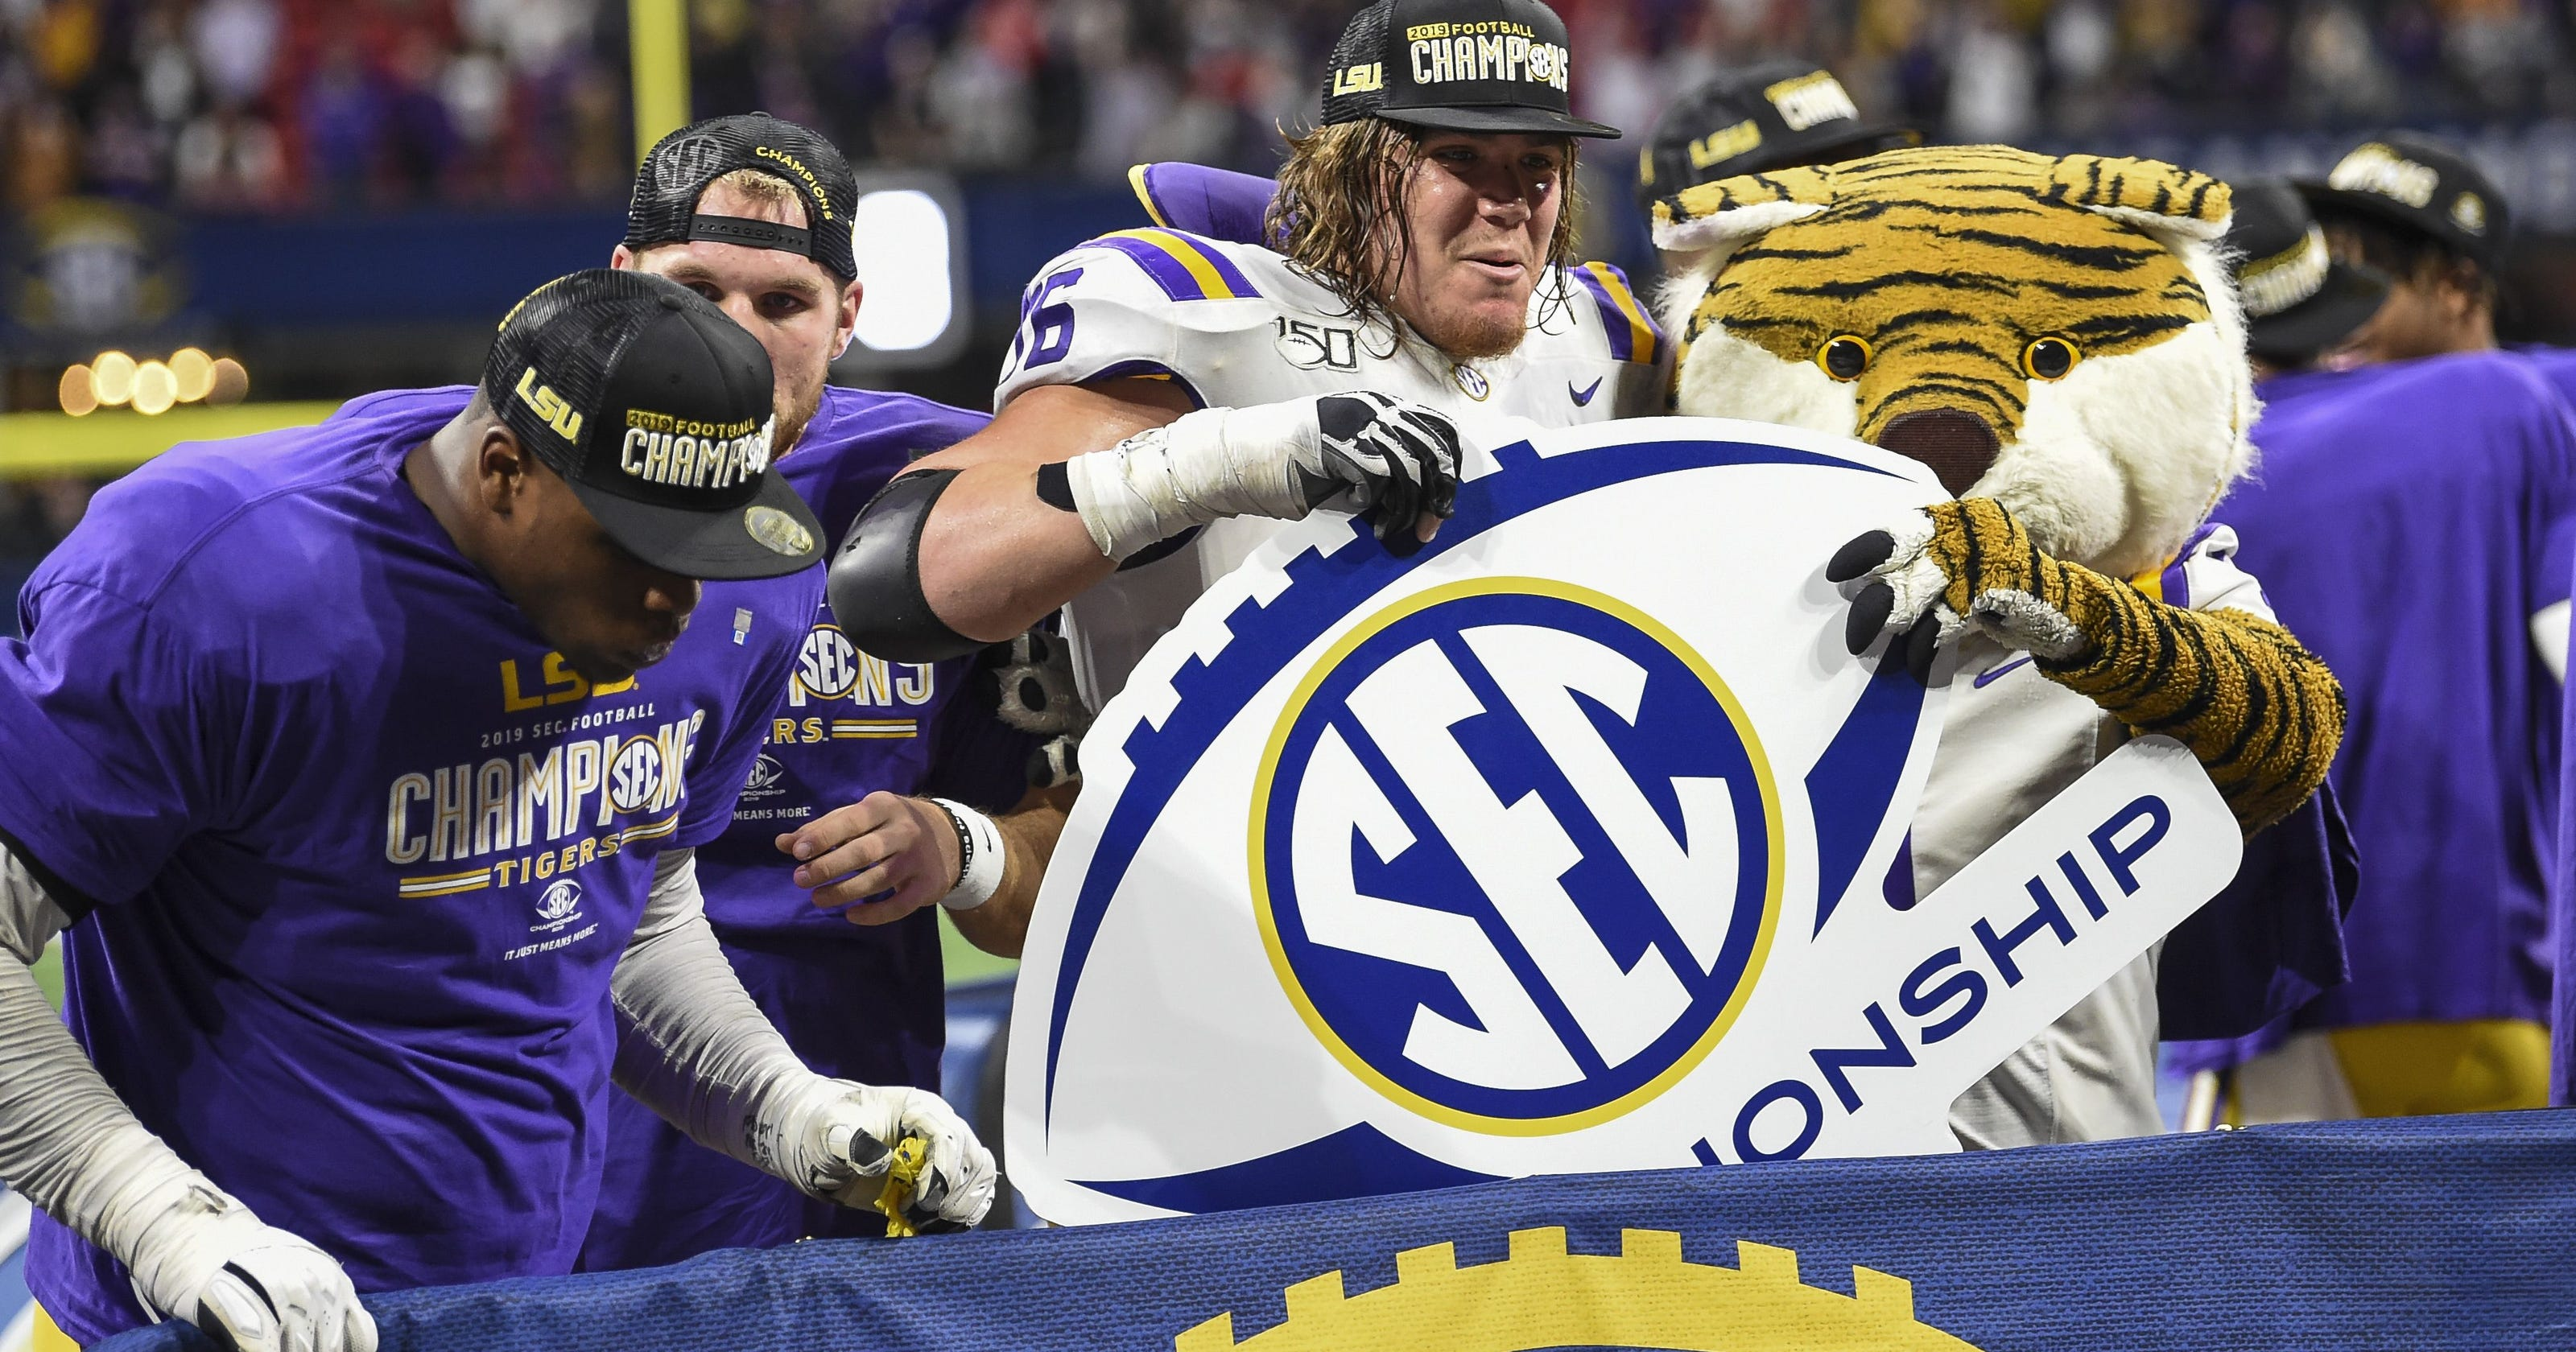 SEC athletes can resume on-campus workouts on June 8